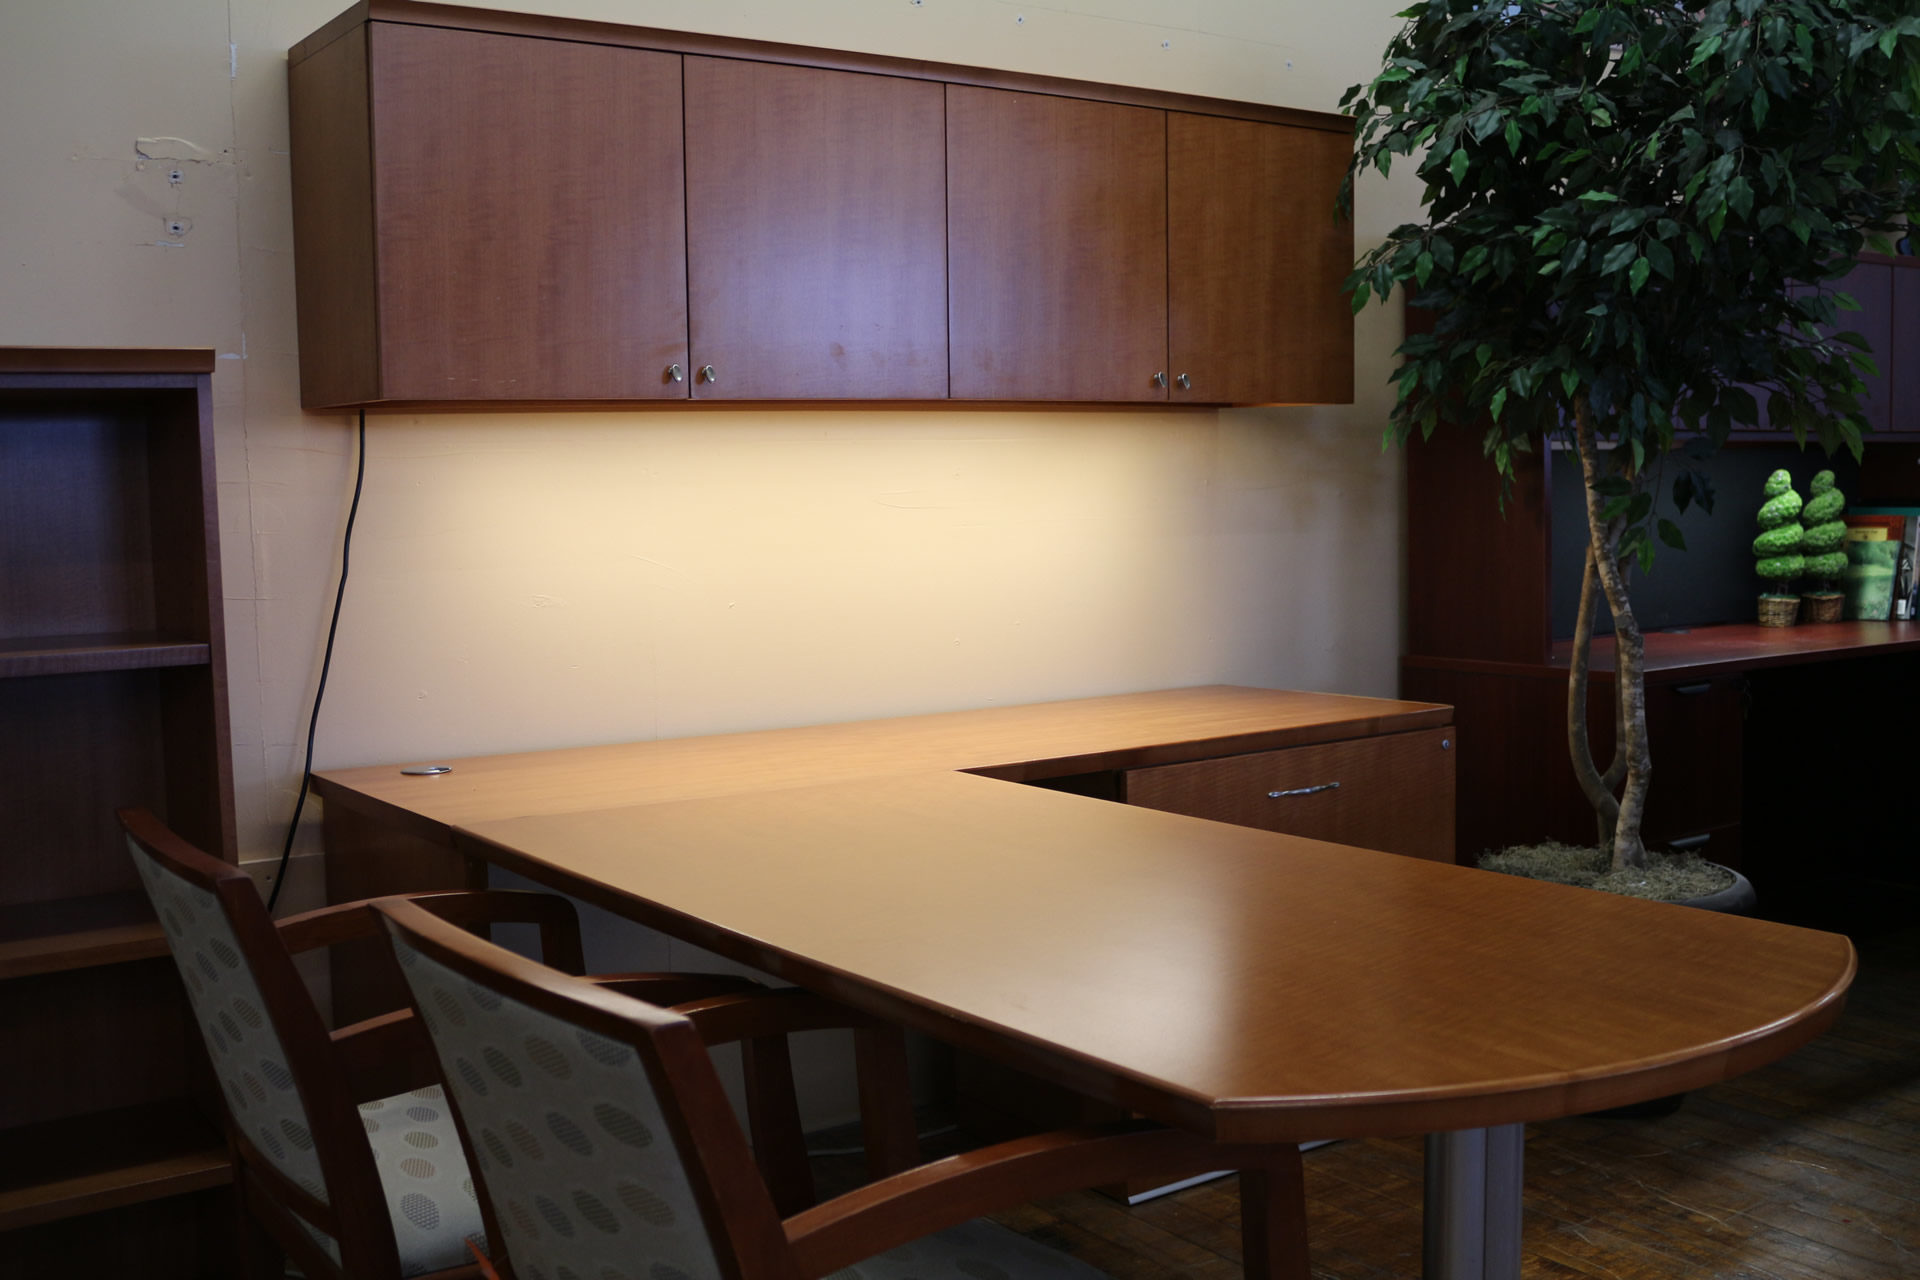 peartreeofficefurniture_peartreeofficefurniture_img_7545.jpg